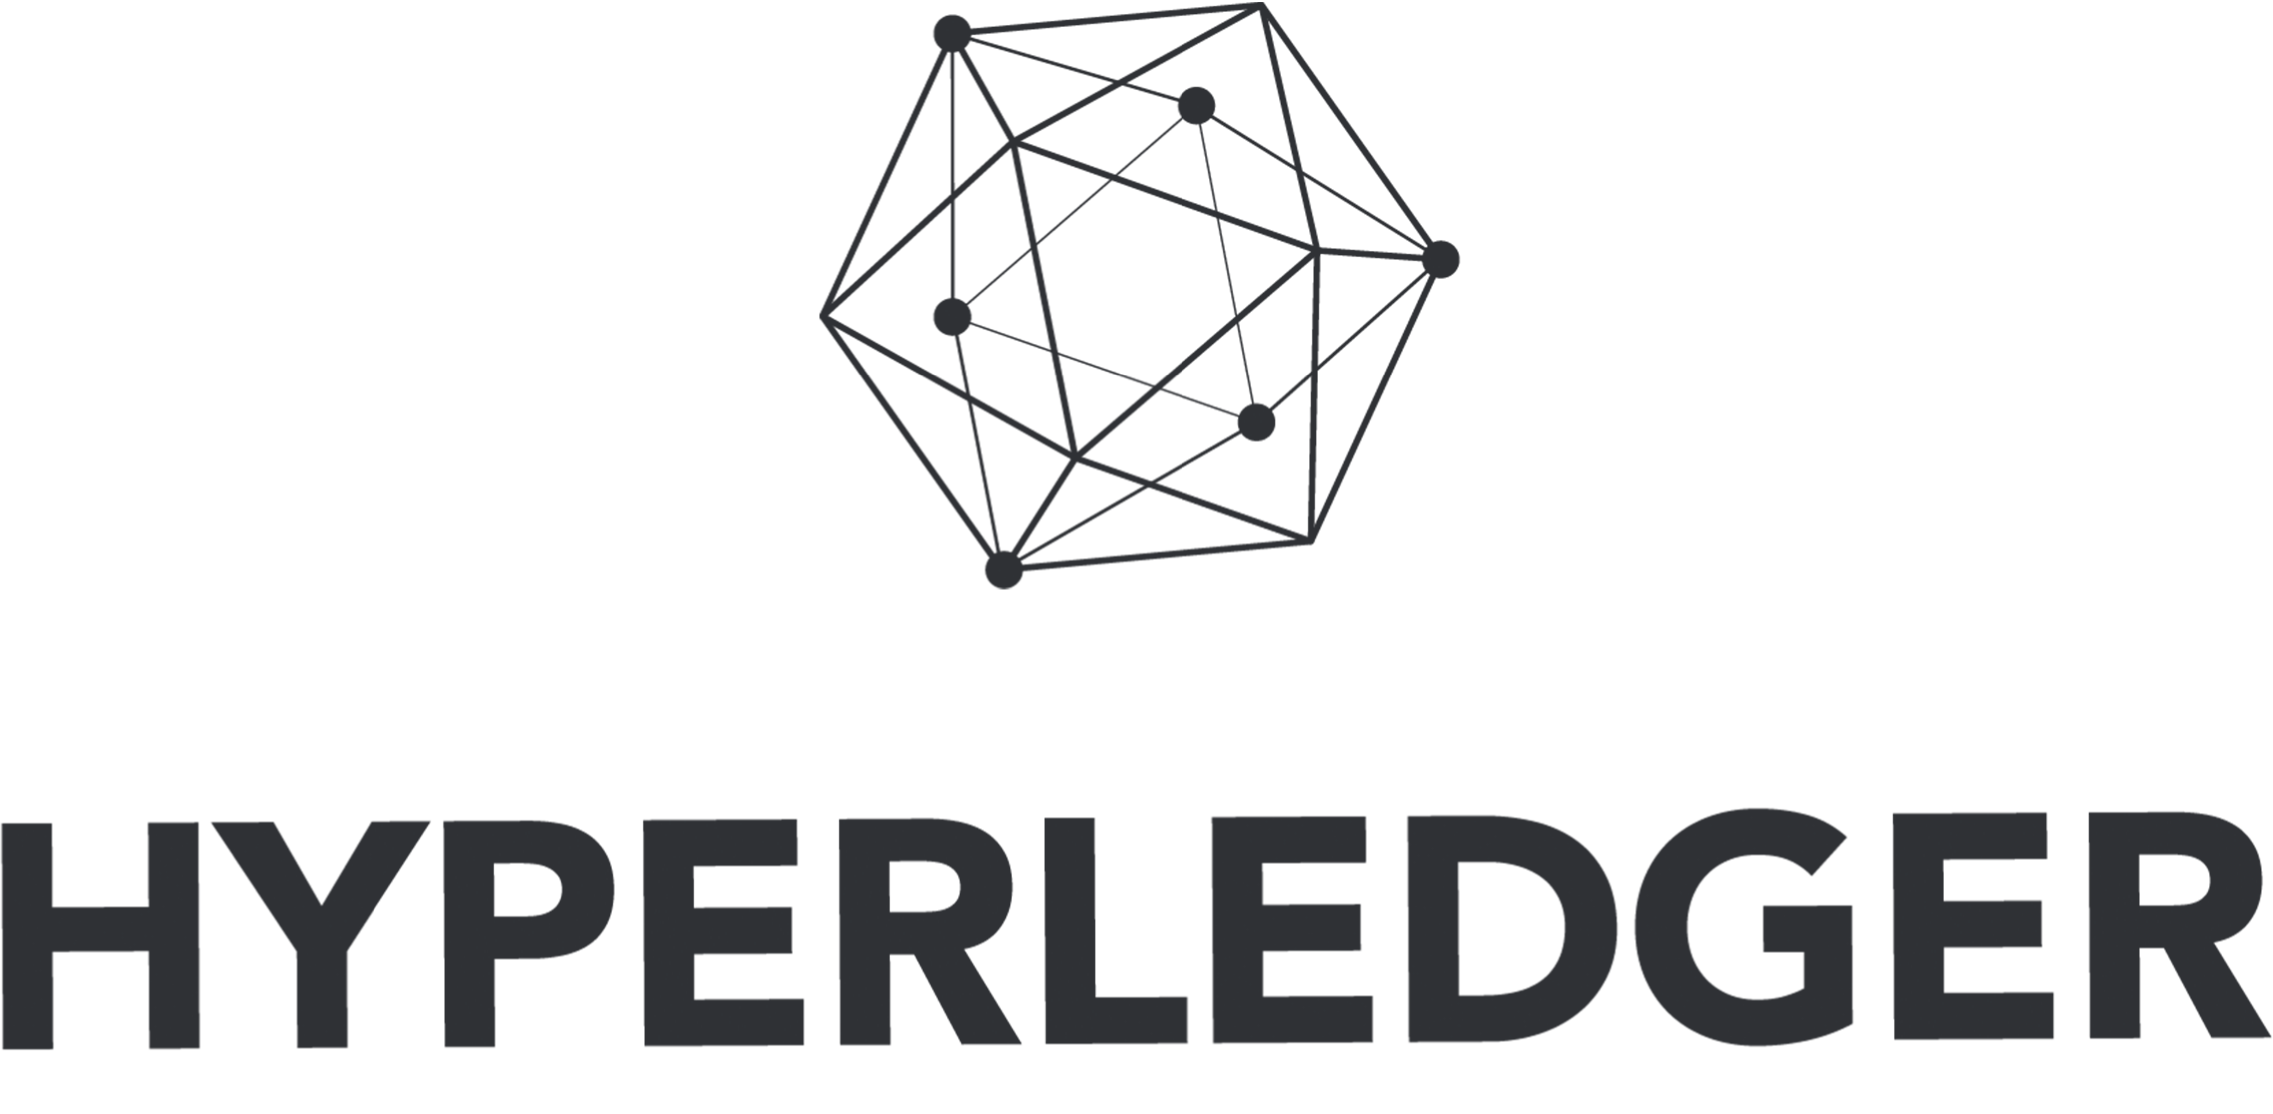 Hyperledger Project.